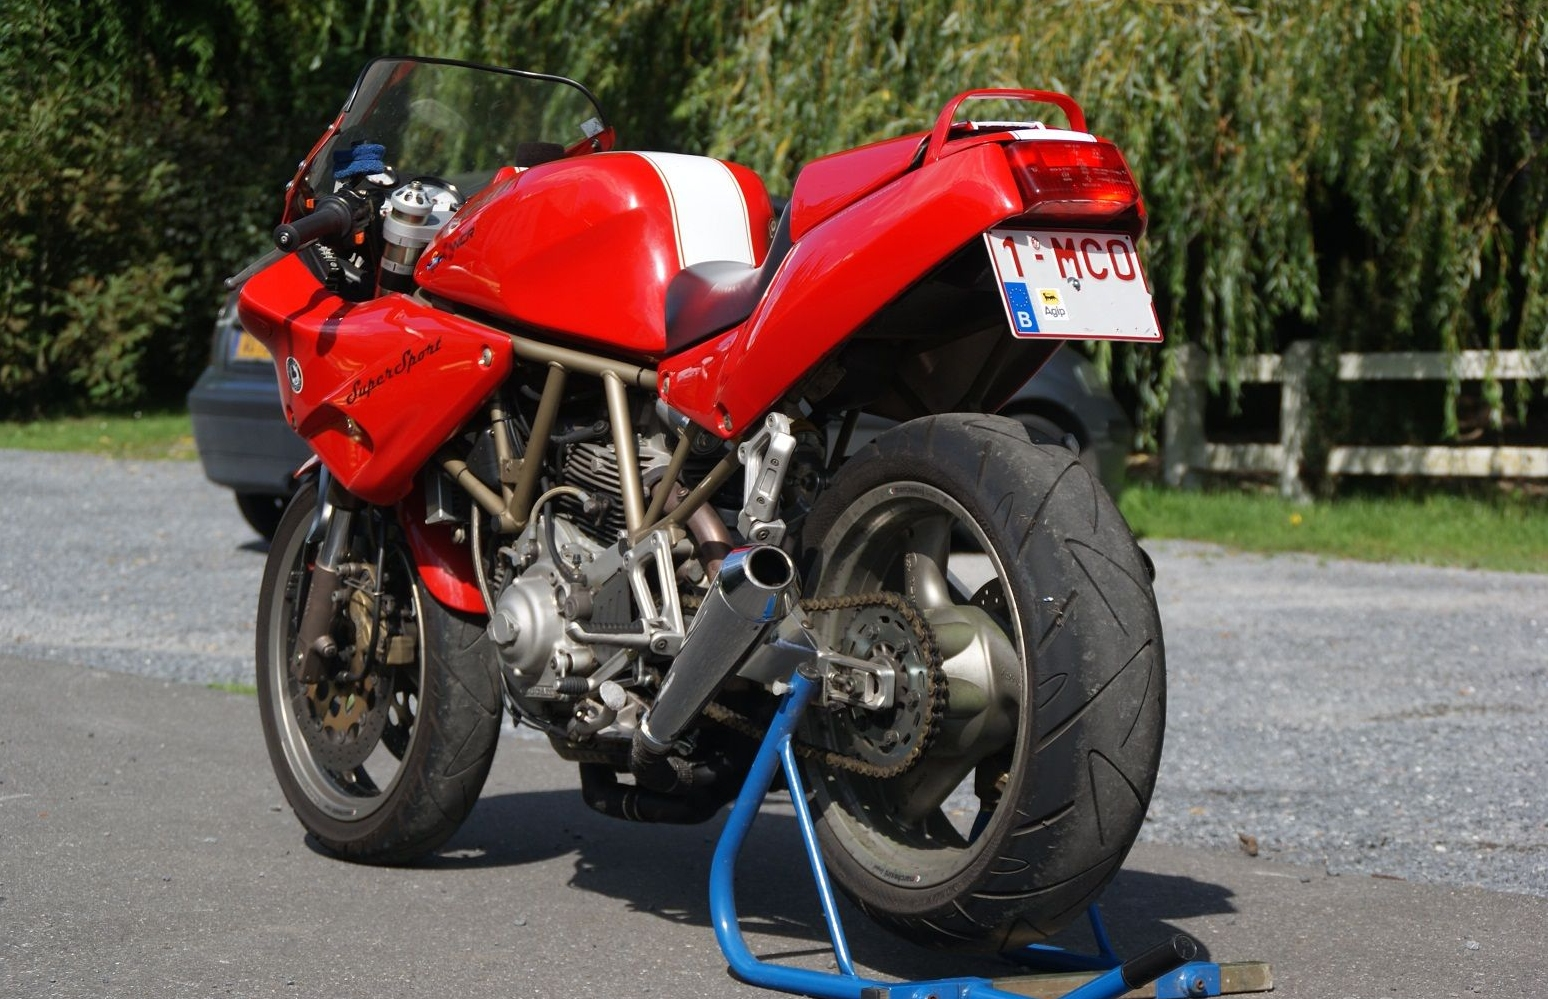 Ducati 900 SS 1997 images #79033